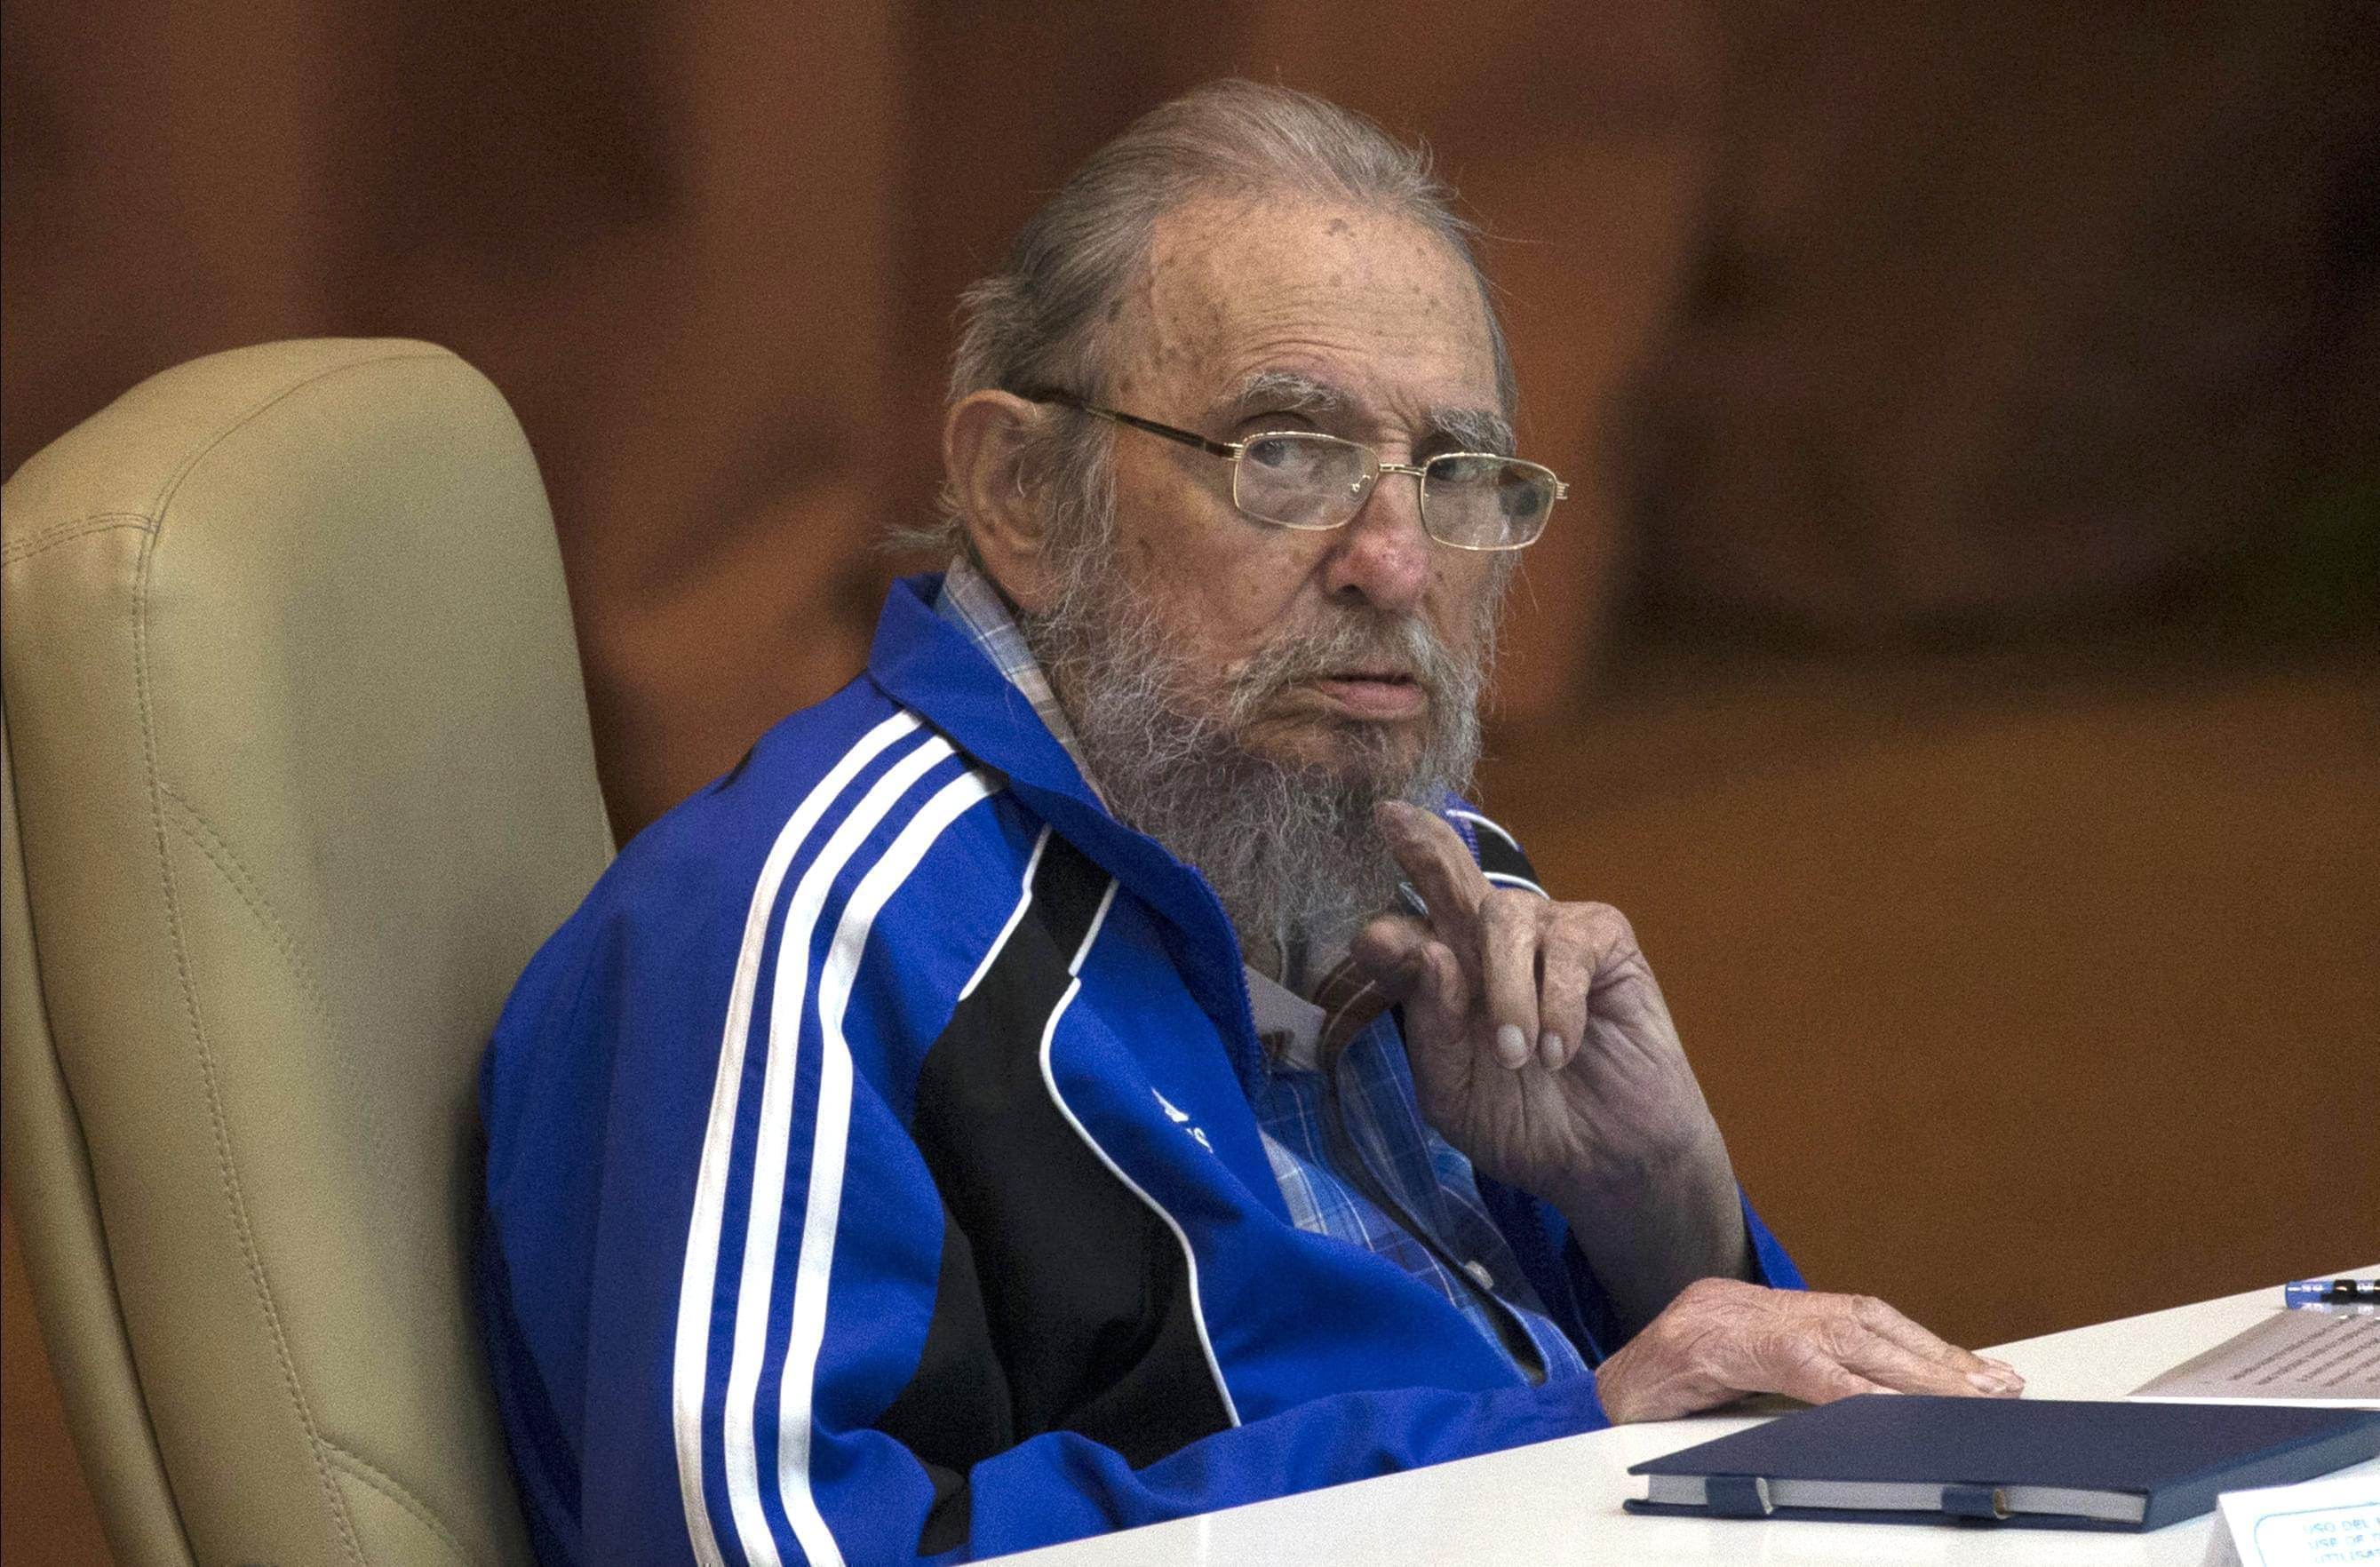 In this April 19, 2016 file photo, Fidel Castro attends the last day of the 7th Cuban Communist Party Congress in Havana, Cuba.